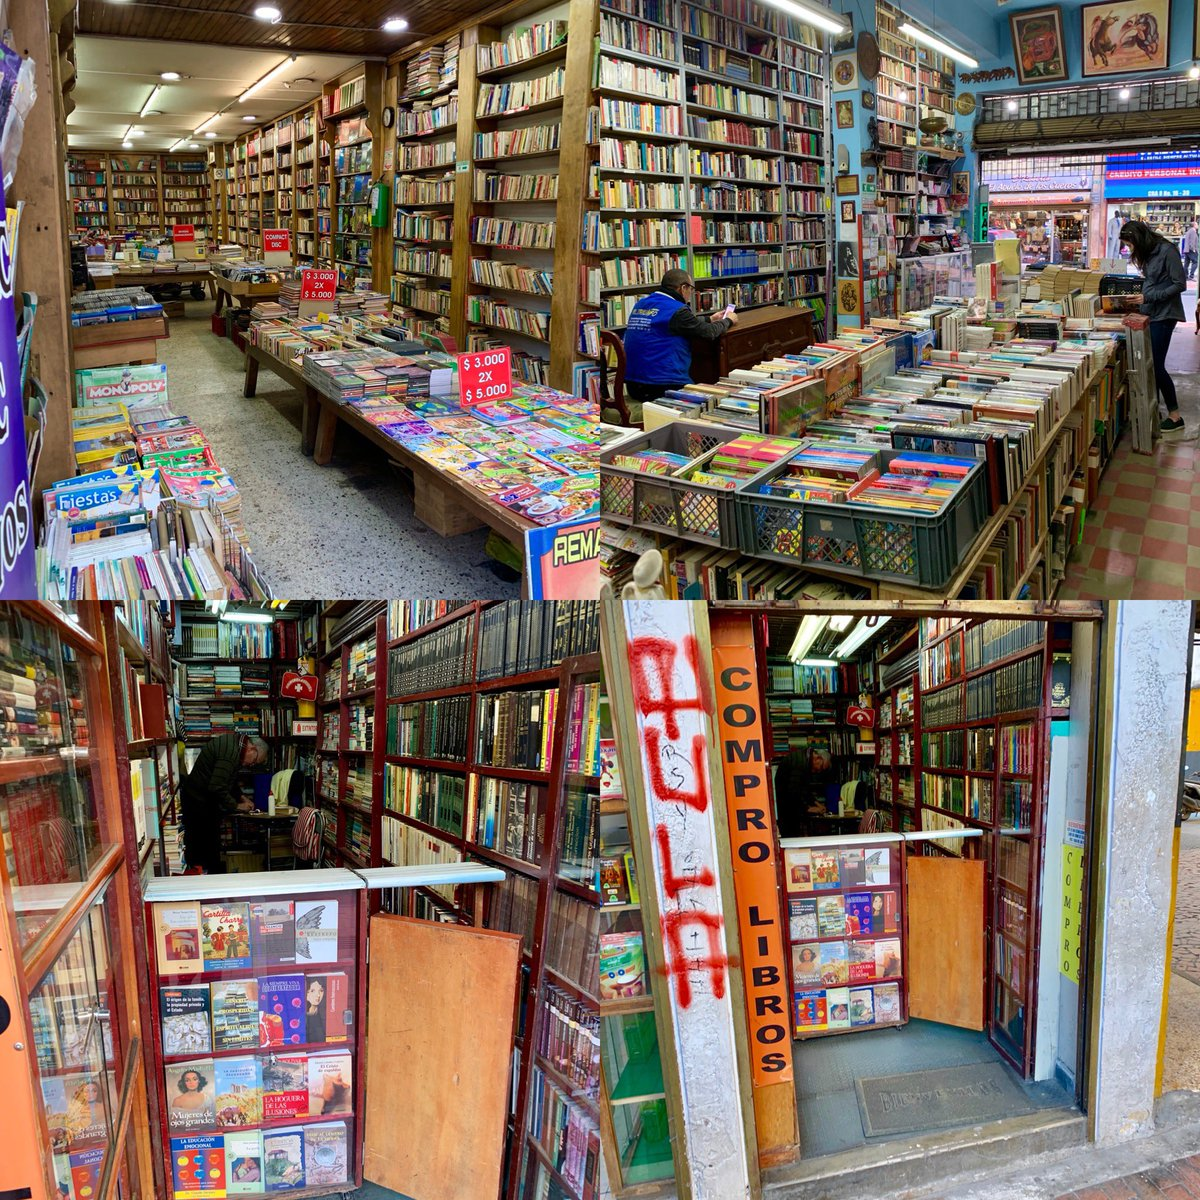 Plenty of great used bookstores in #bogota #colombia2019 #mygft